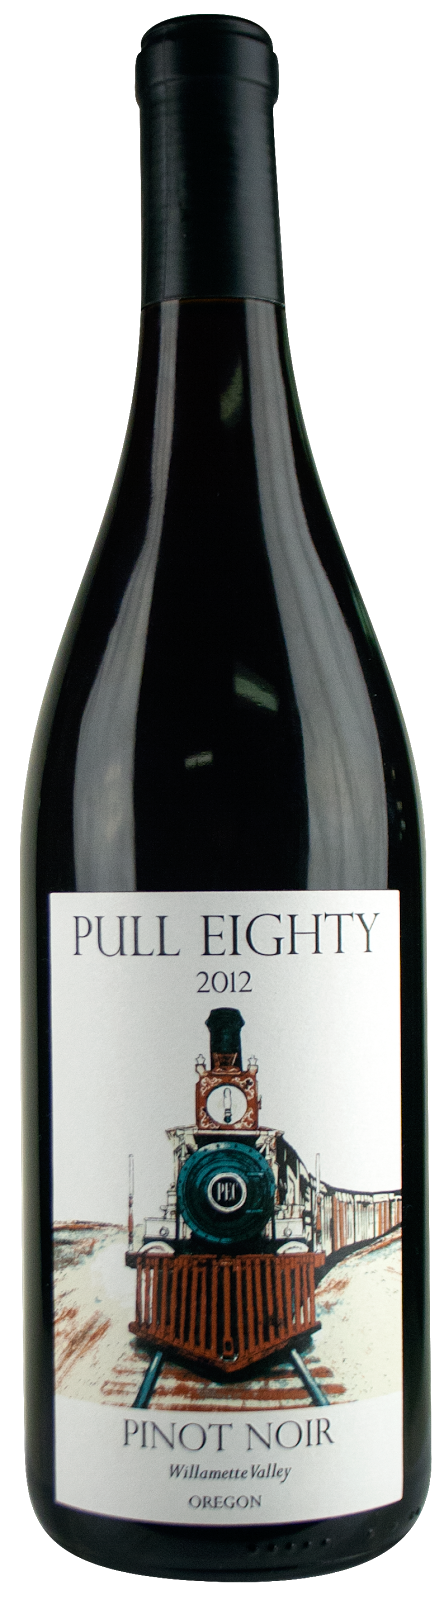 Grilled Poultry - 2012 Pull Eighty Pinot Noir